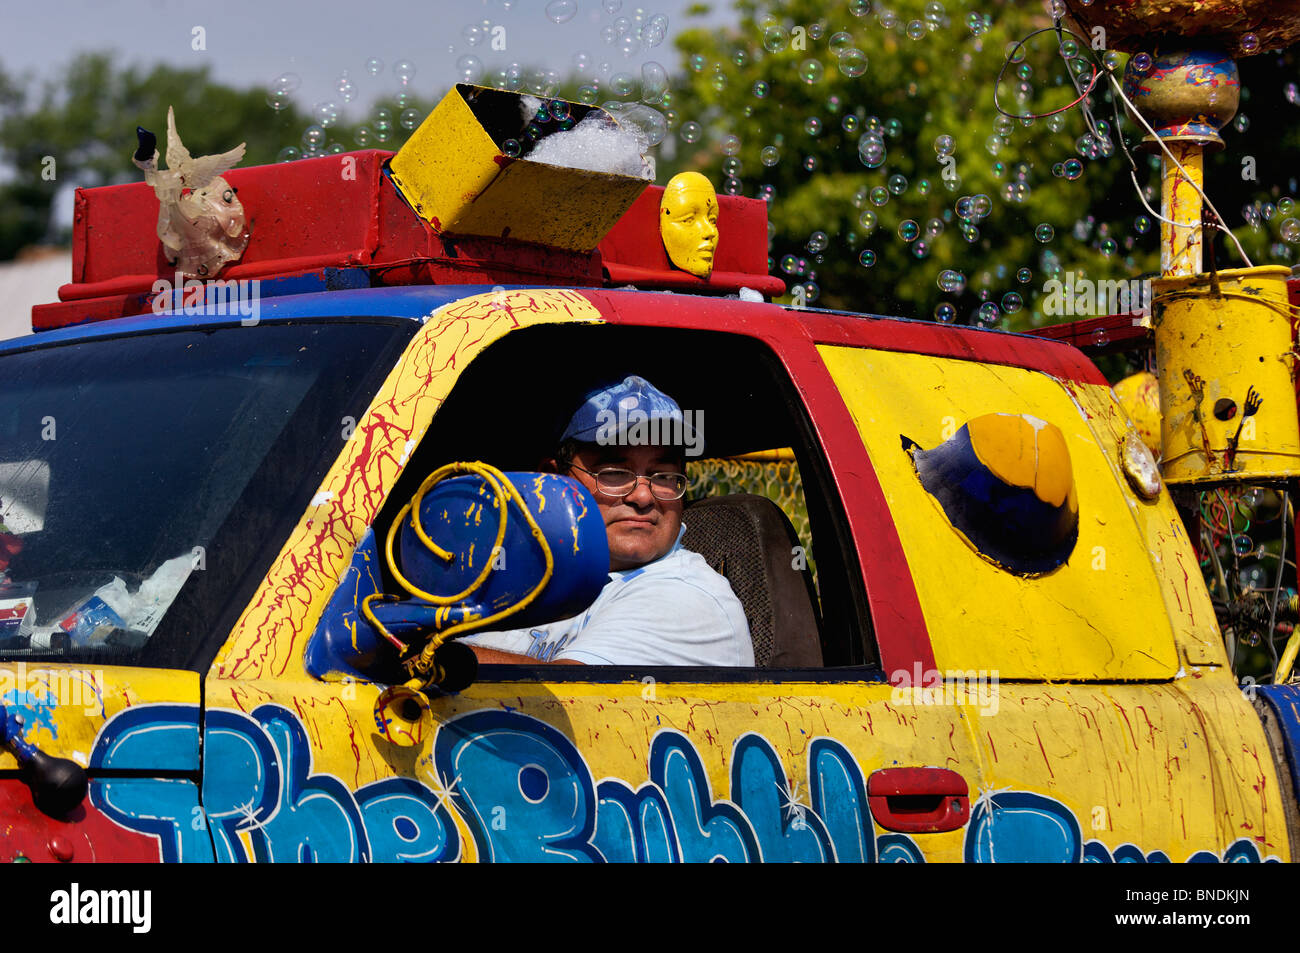 Bubble Truck in Oldest Continuous Independence Day Parade in America in New Pekin, Indiana - Stock Image